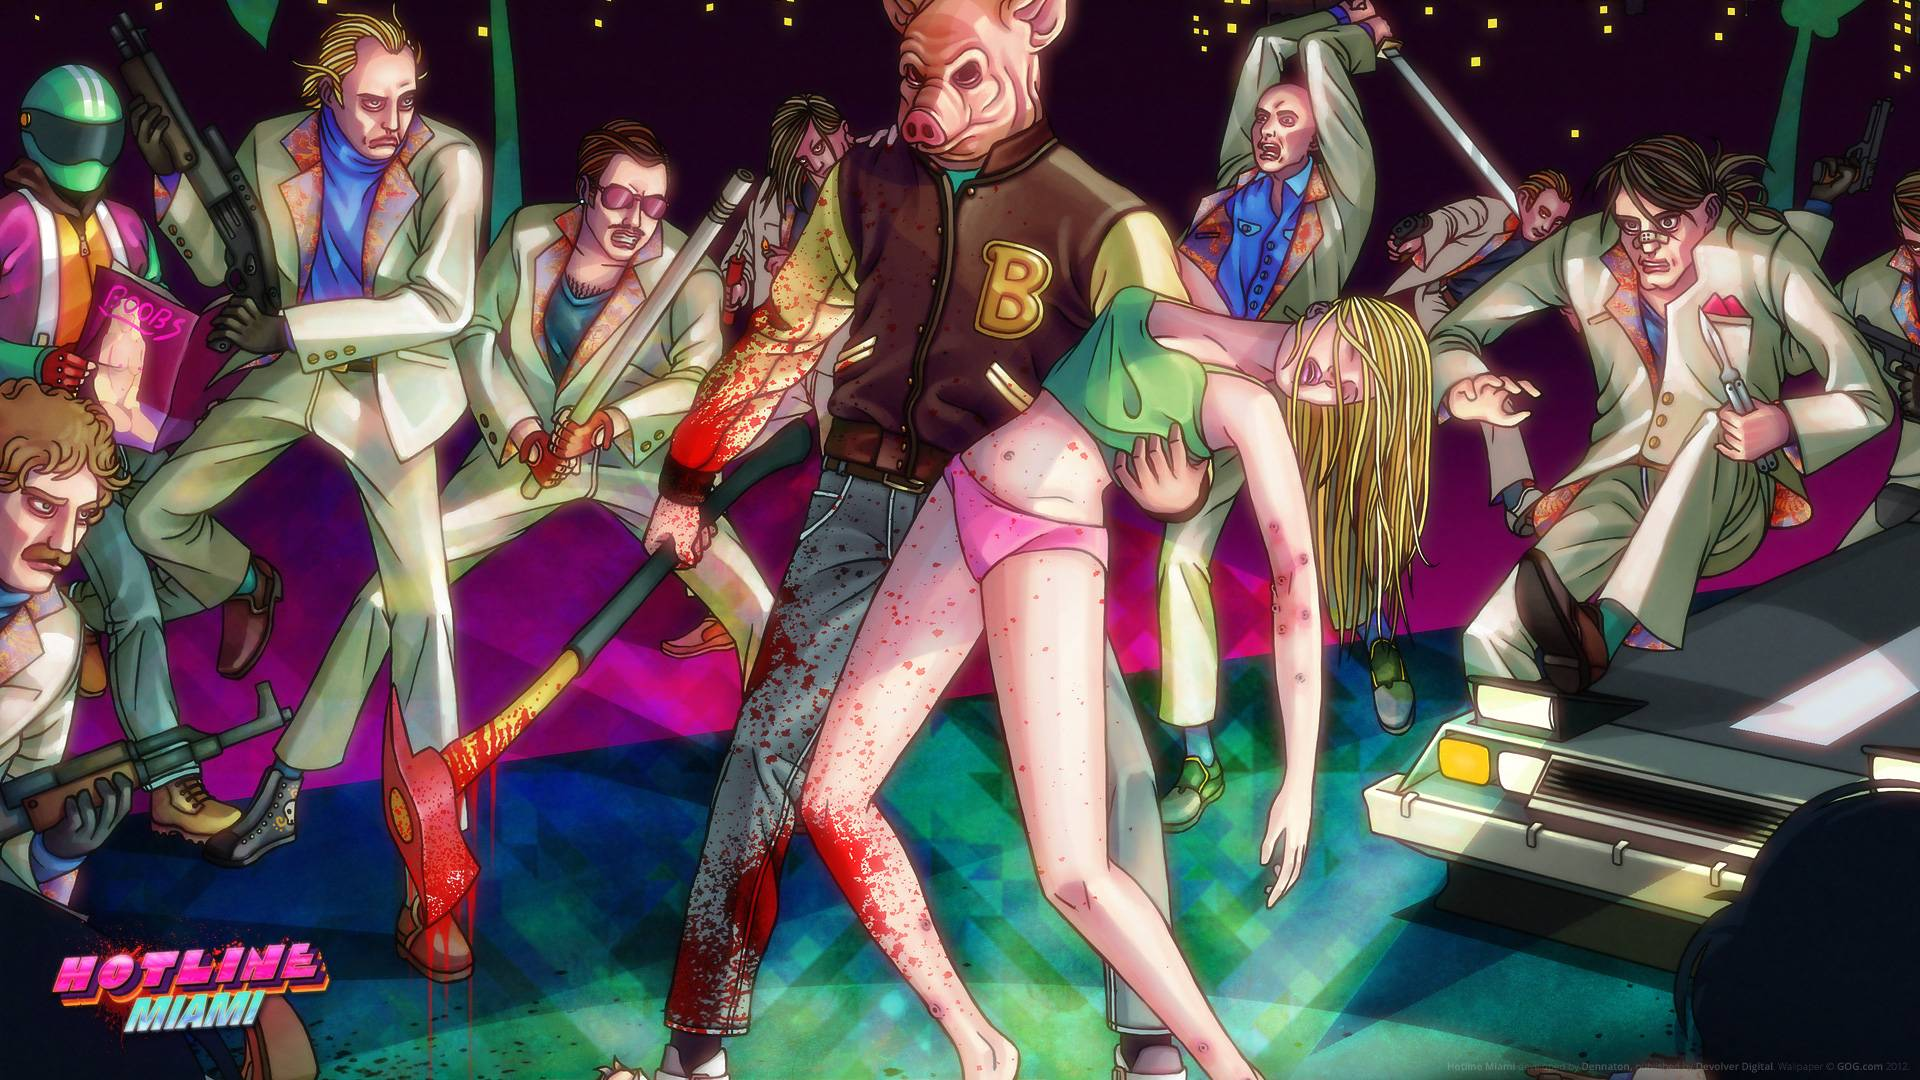 Let off some Steam with Hotline Miami